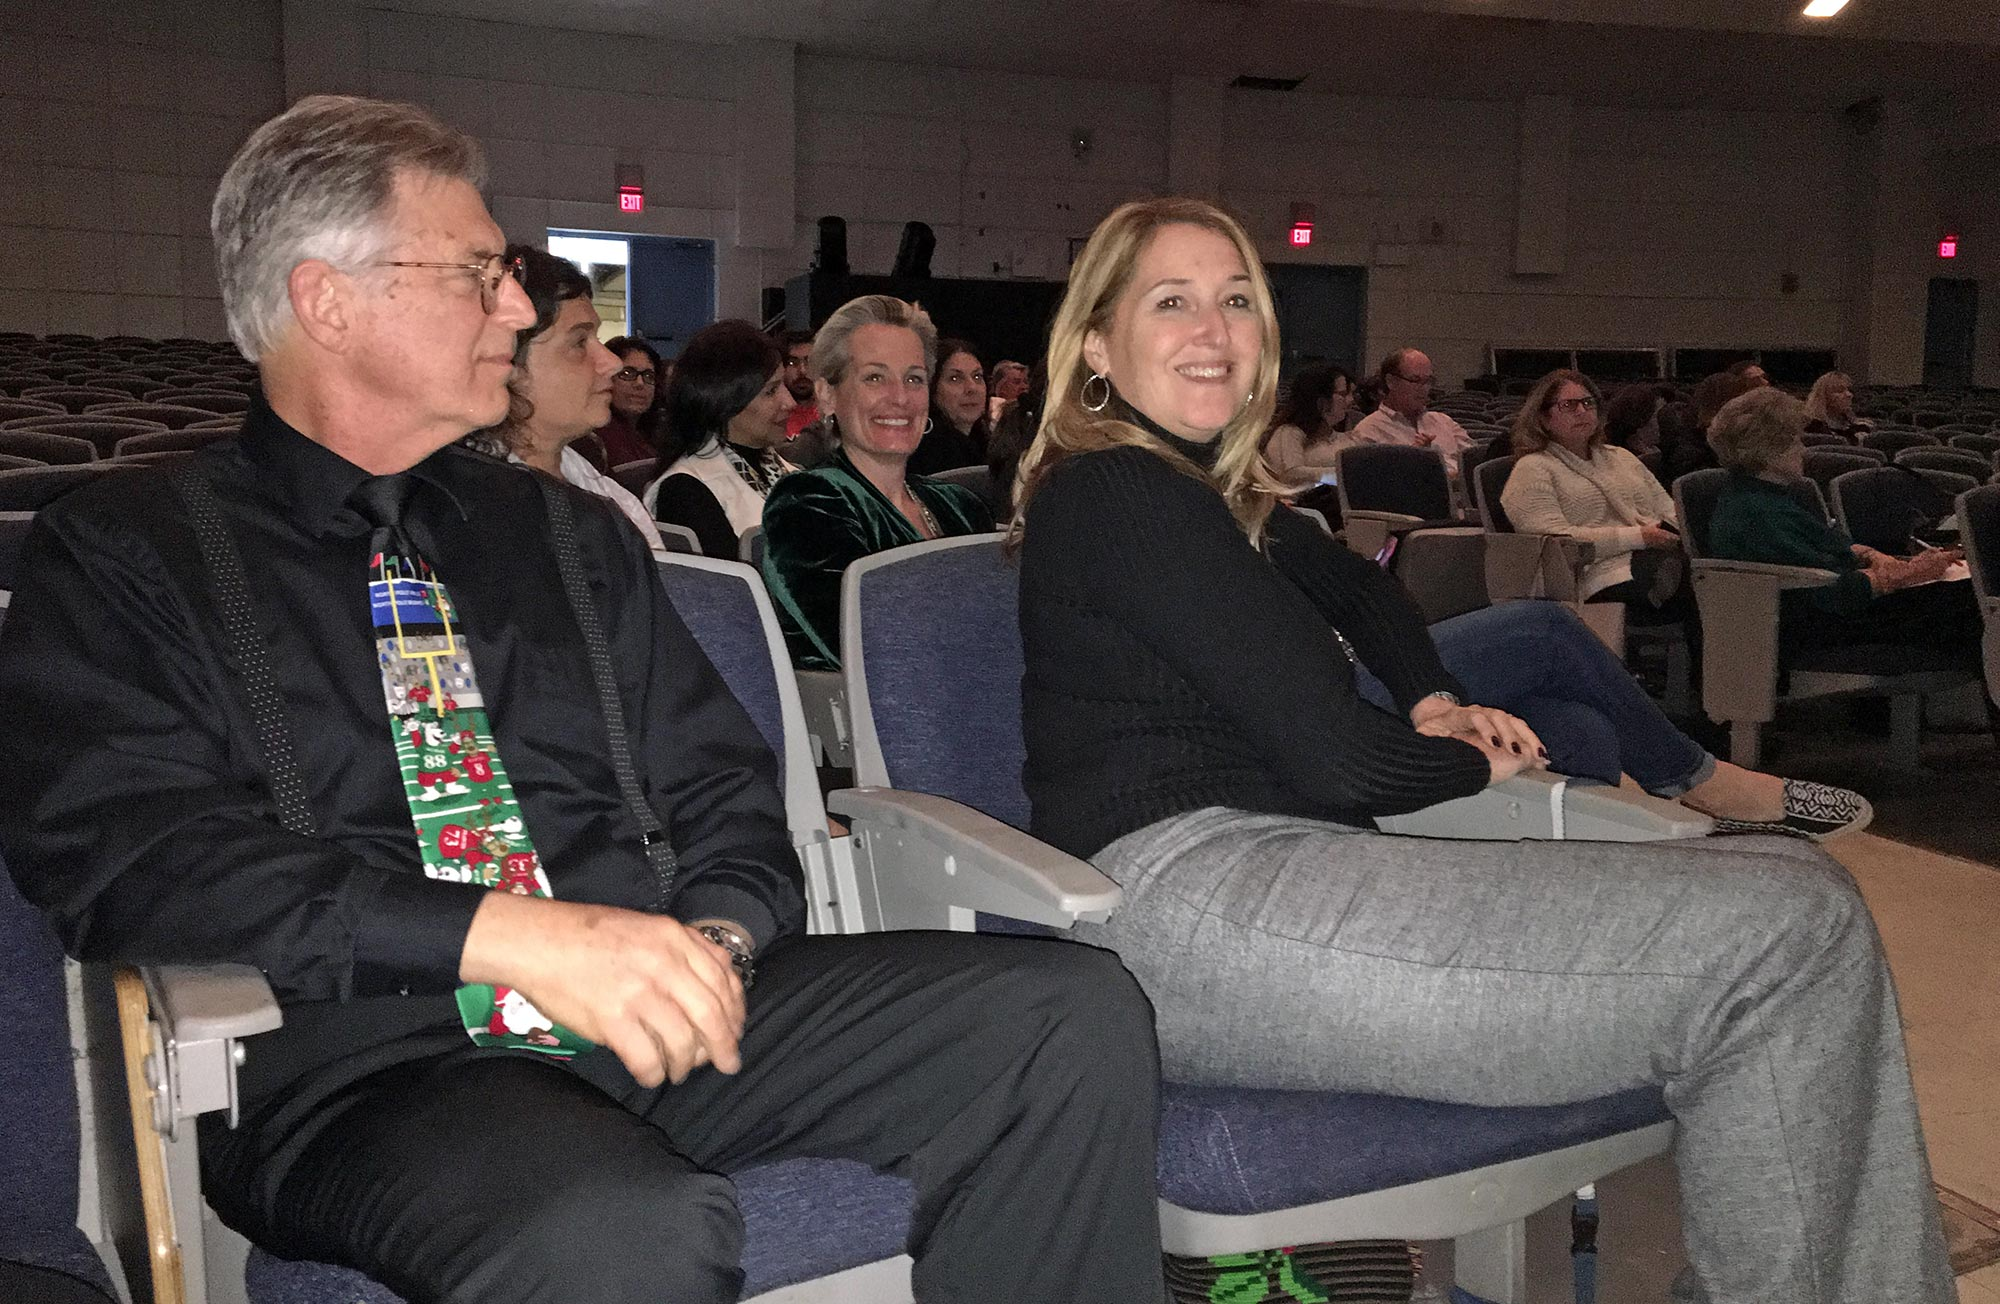 [L to R] School Board Commissioner Dr. Larry Feldman, Pinecrest Councilwoman Anna Hochkhammer (second row, smiling) and Palmetto HS Principal Victoria Dobbs